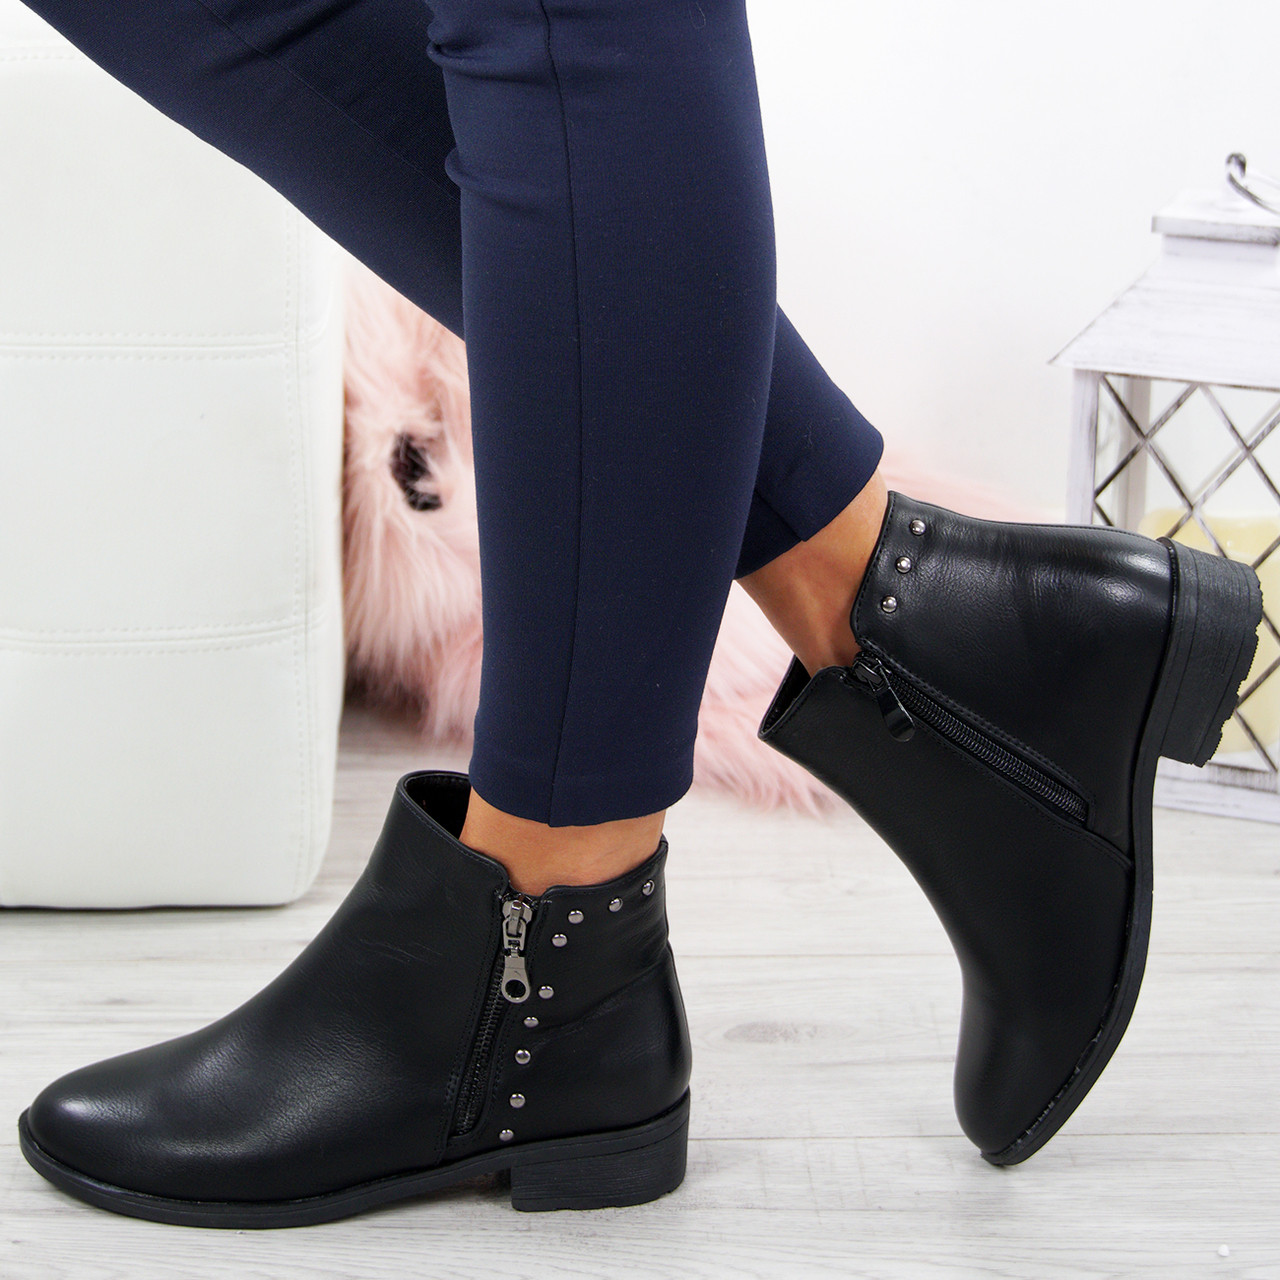 5aec7e8d71271 Ladies ankle studded boots womens low block heel zip fastening winter shoes  size jpg 1280x1280 Low